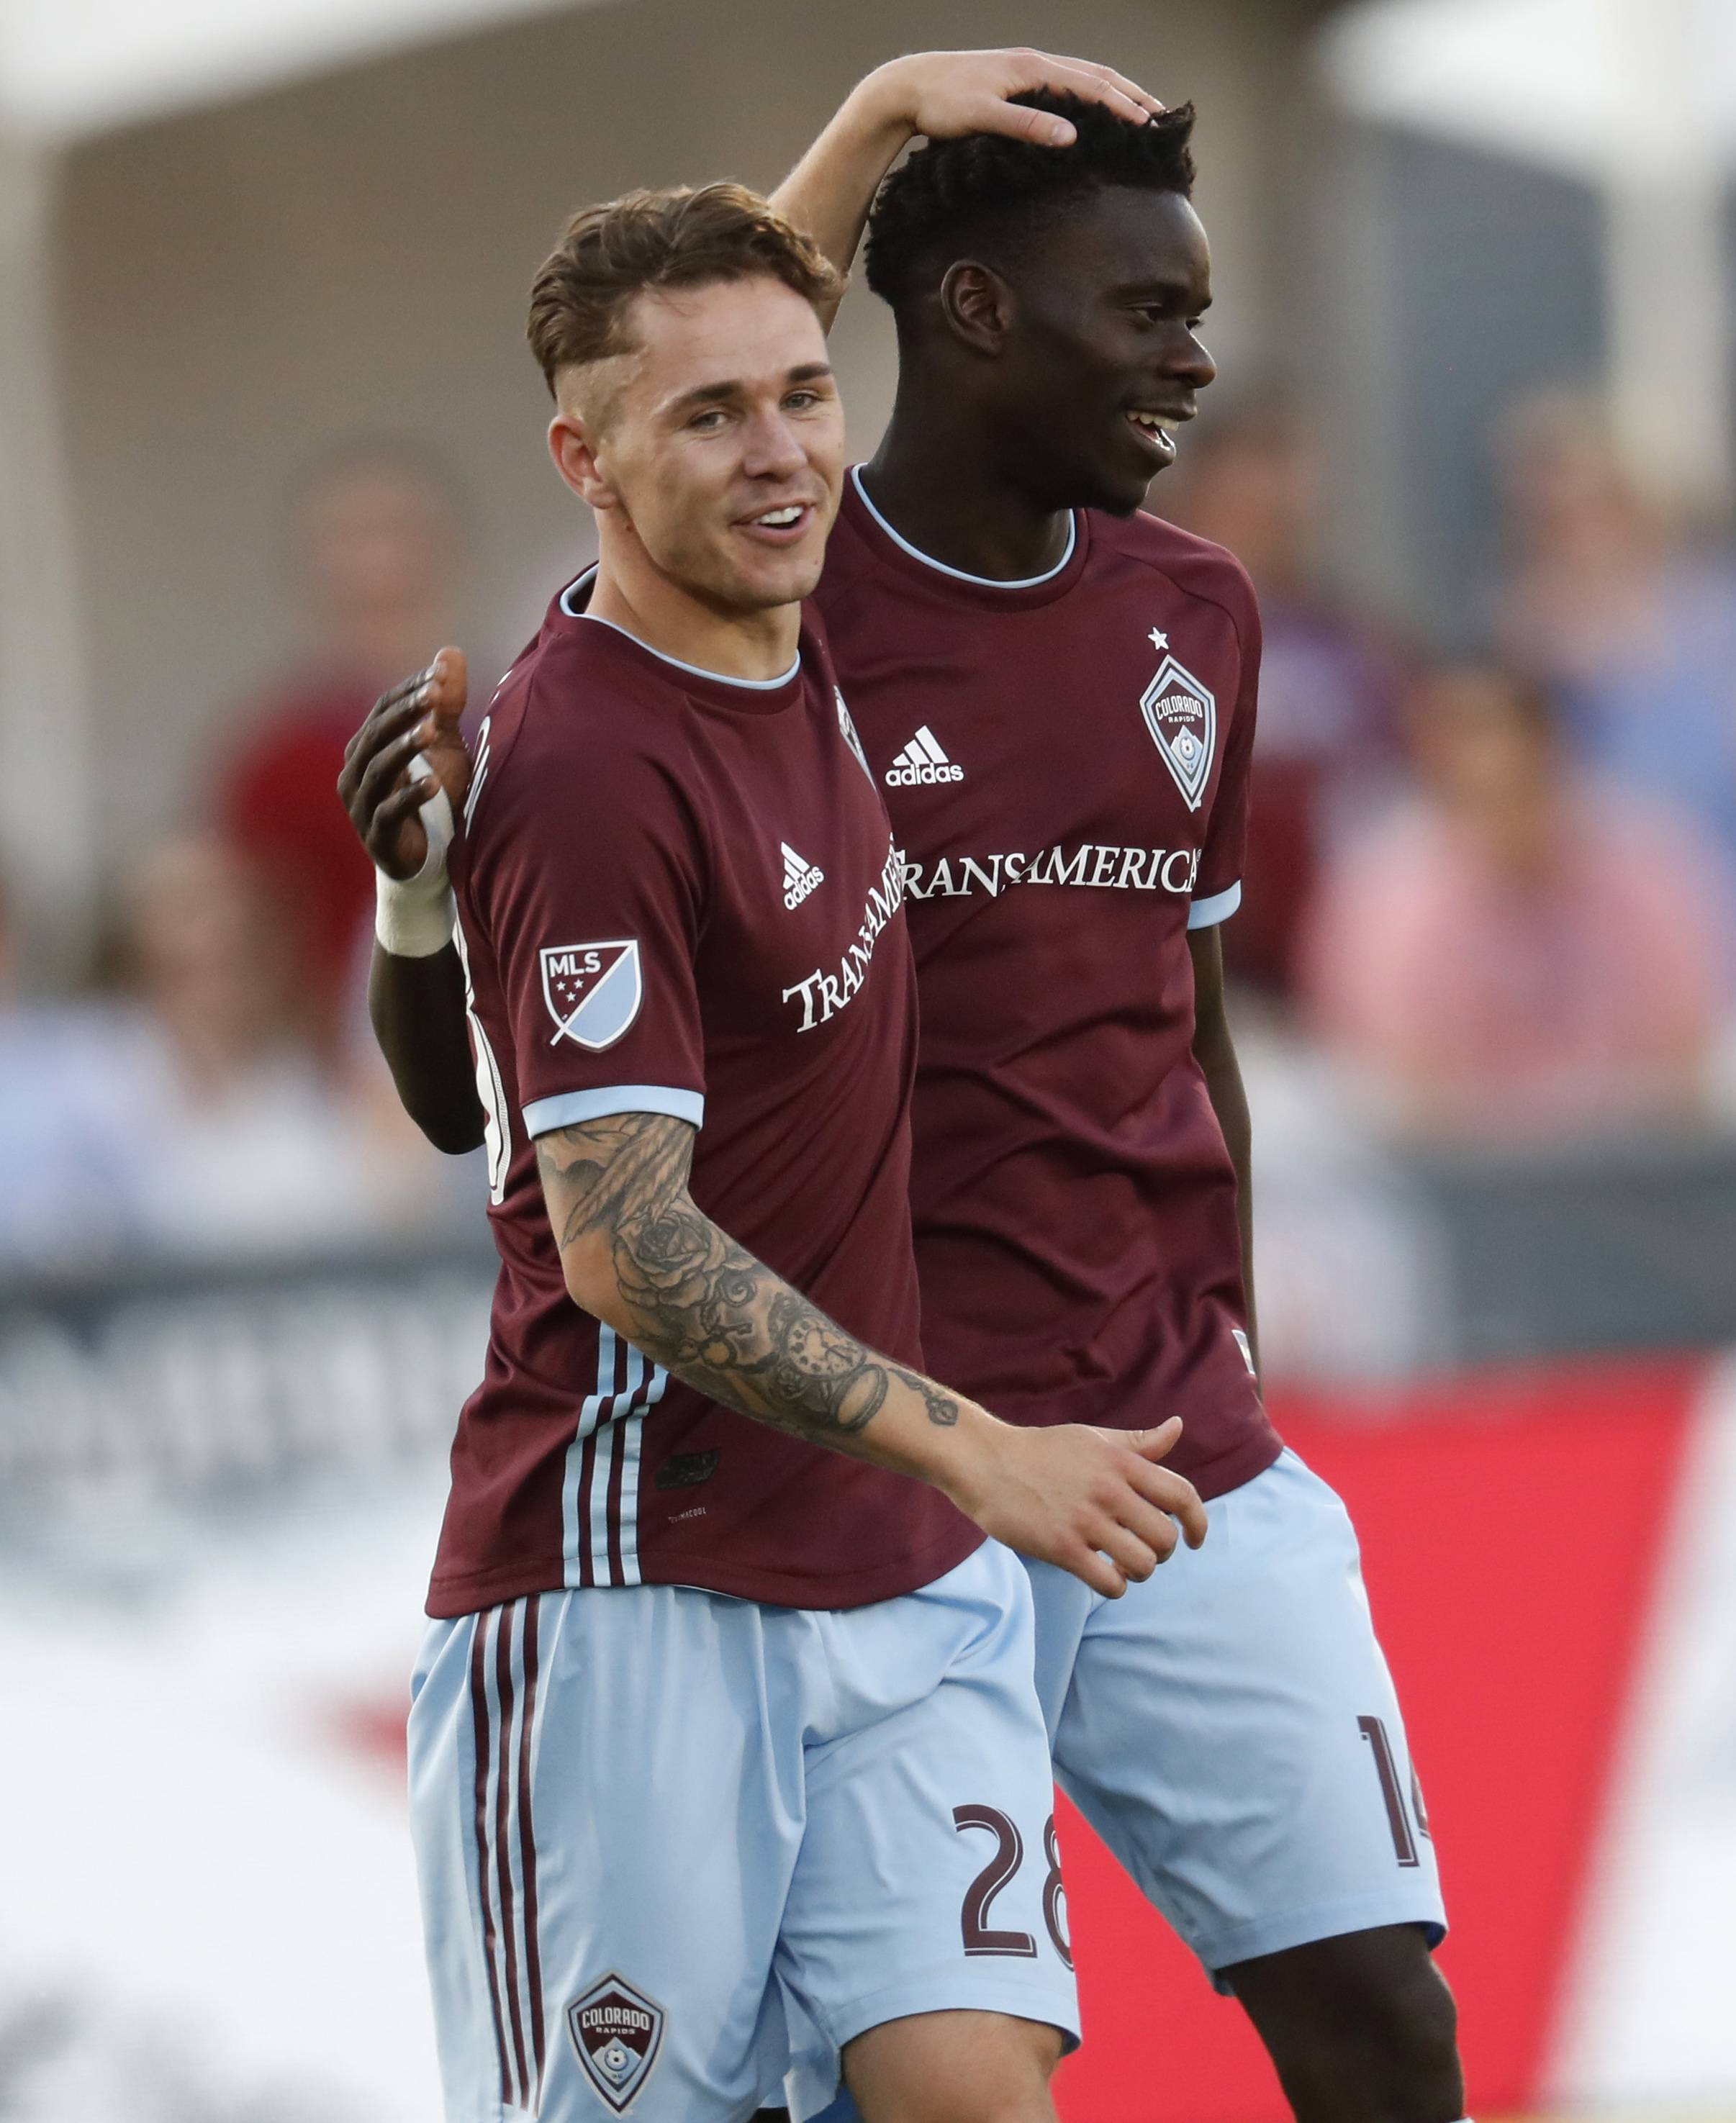 Colorado Rapids midfielder Sam Nicholson, front, congratulates forward Dominique Badji for his goal against the Chicago Fire during the first half of an MLS soccer match Wednesday, June 13, 2018, in Commerce City, Colo.